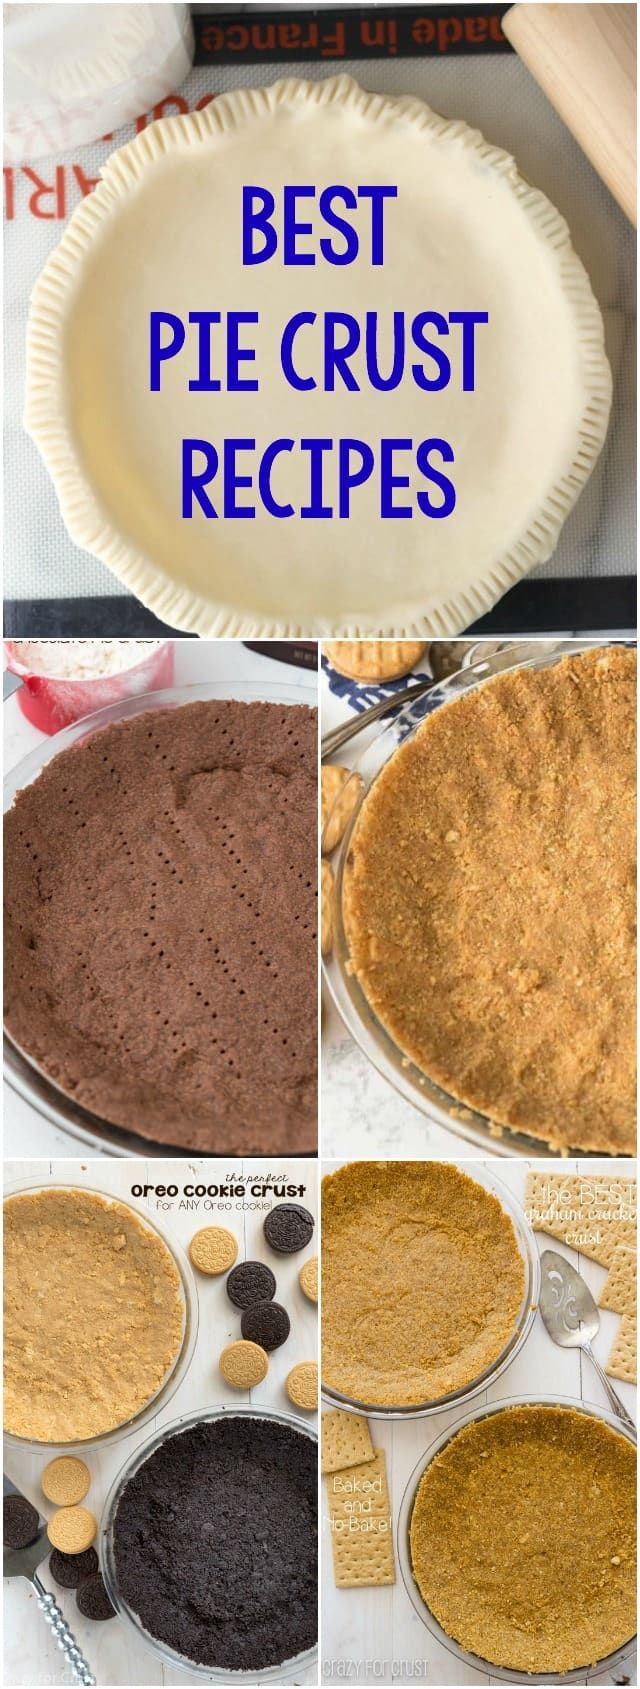 The BEST Pie Crust Recipes on the internet - from no-bake cookie ...